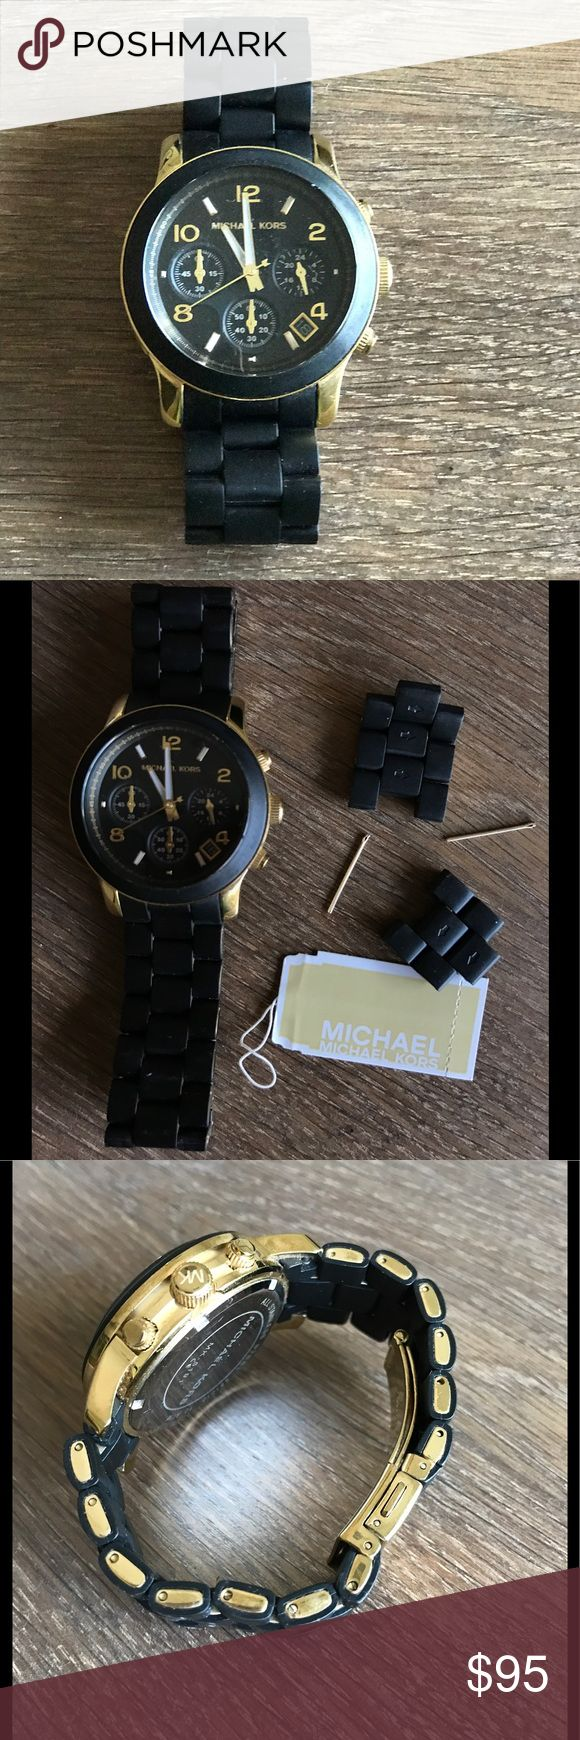 Michael Kors Black Rubber and Gold Women's watch Michael Kors - Black rubber watch with gold details. In great condition, just needs to new battery. Rubber is really easy to maintain. This watch adds an edgy look to your outfit! MICHAEL Michael Kors Accessories Watches